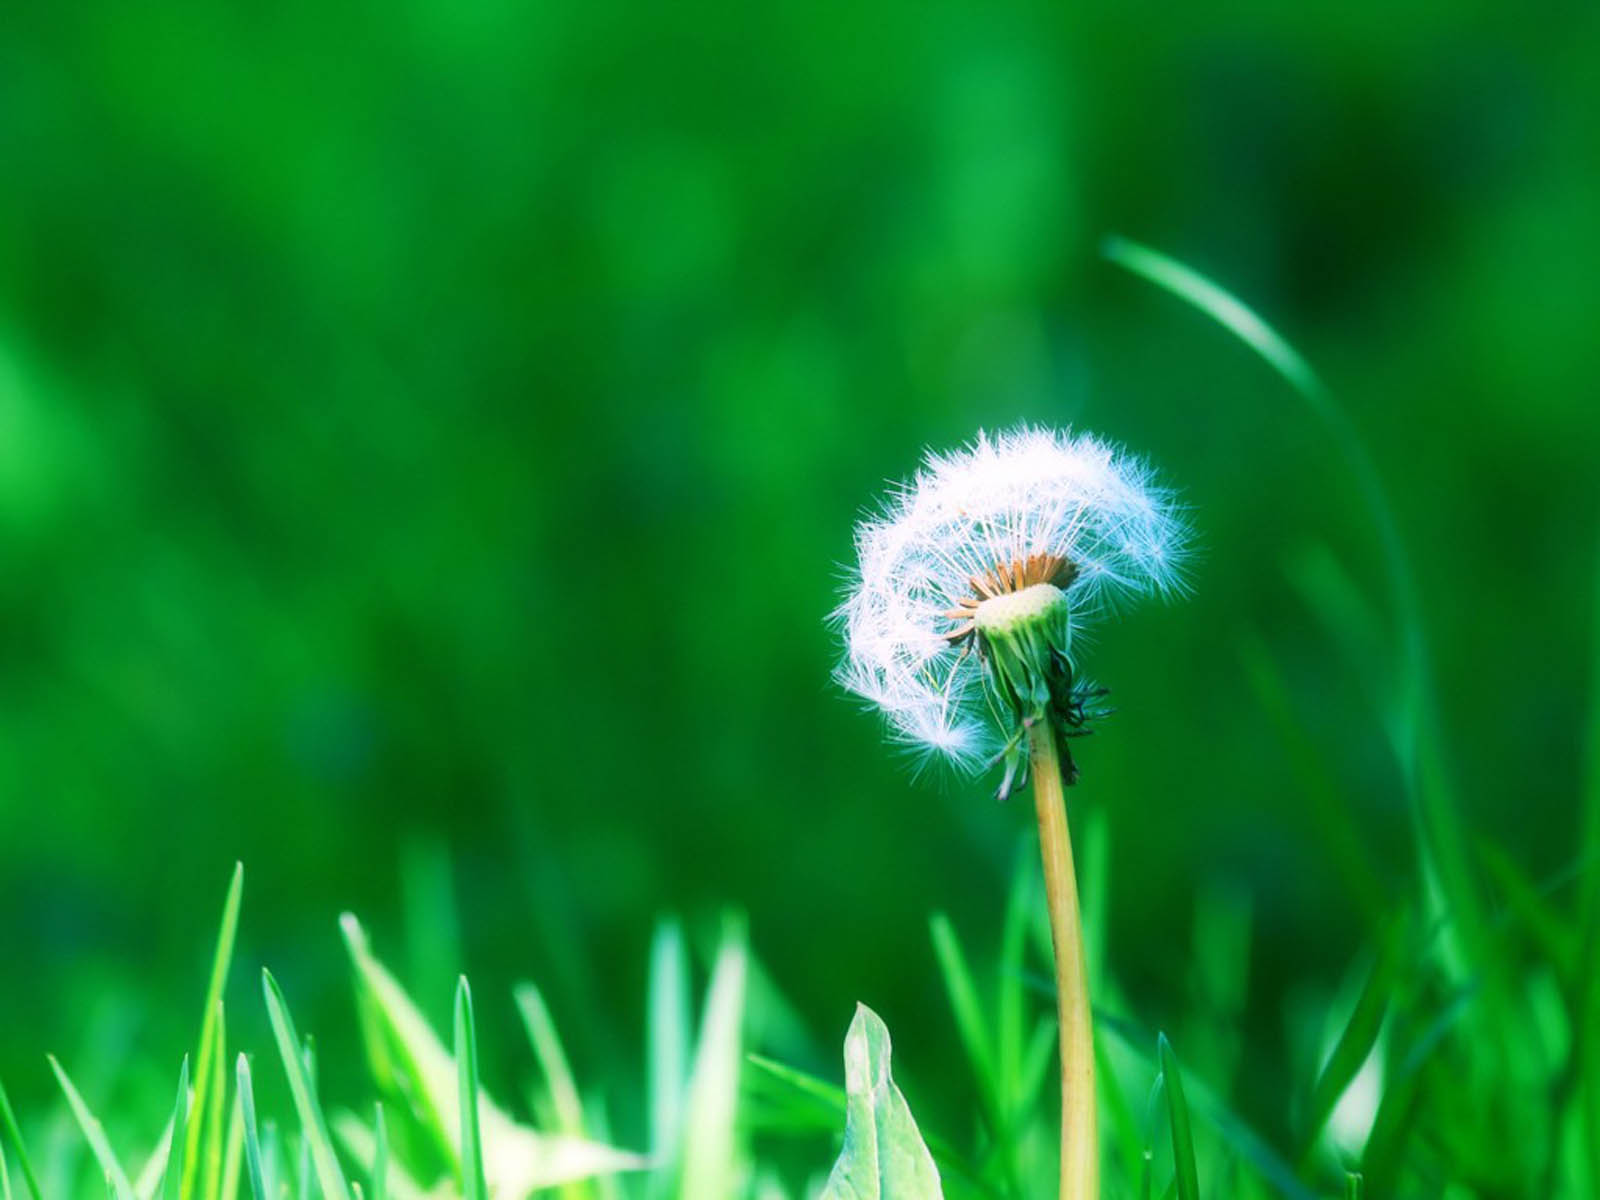 Desktop Wallpapers Dandelion Flowers Desktop Backgrounds 1600x1200